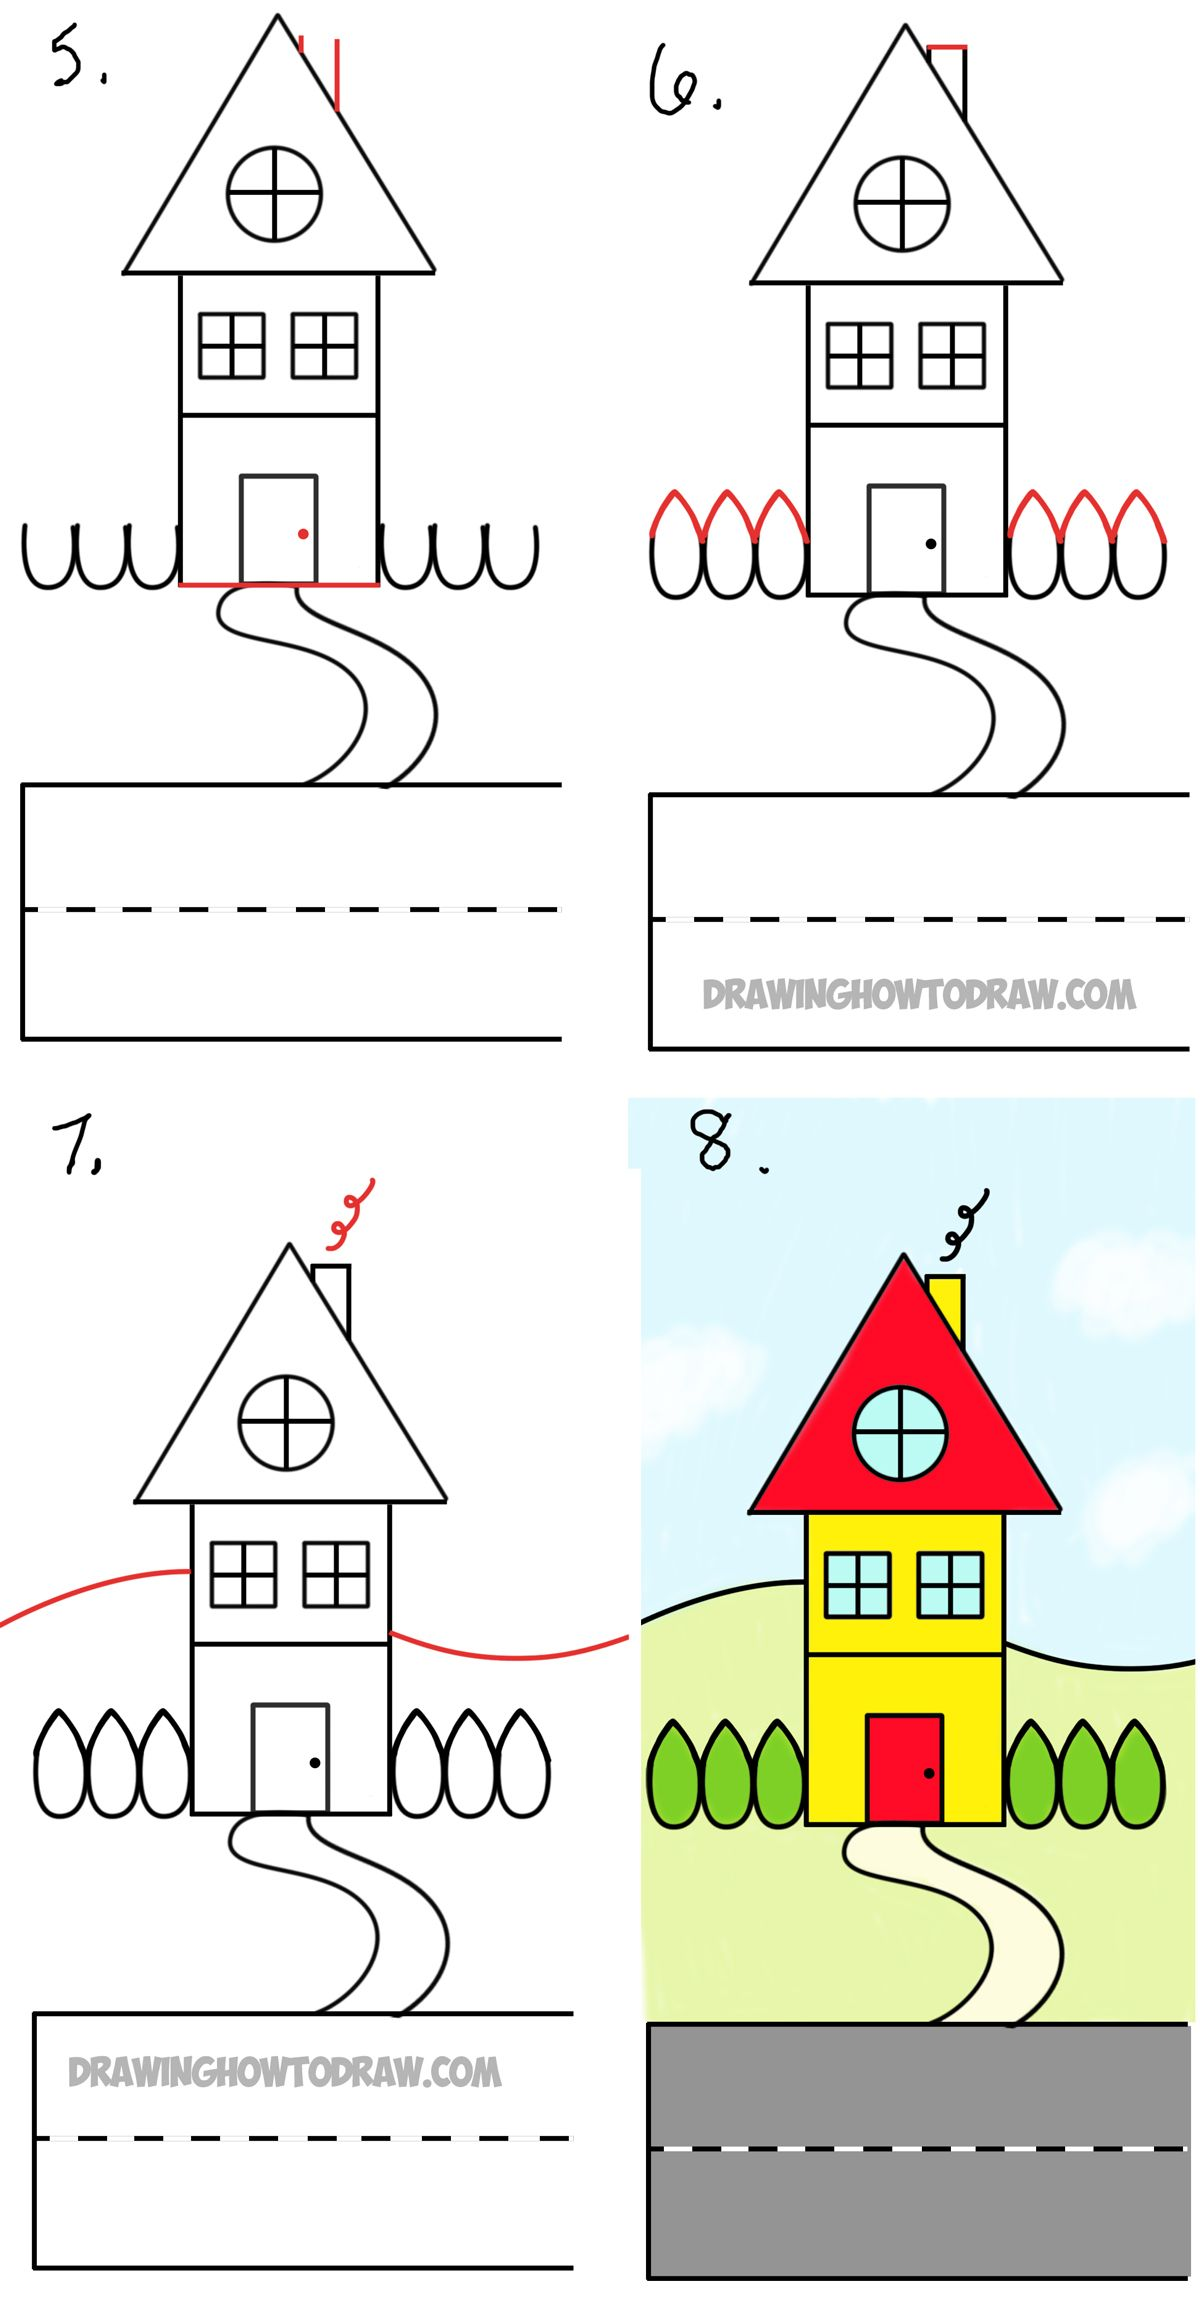 How to draw a cartoon house from the word house an easy for Building a home step by step